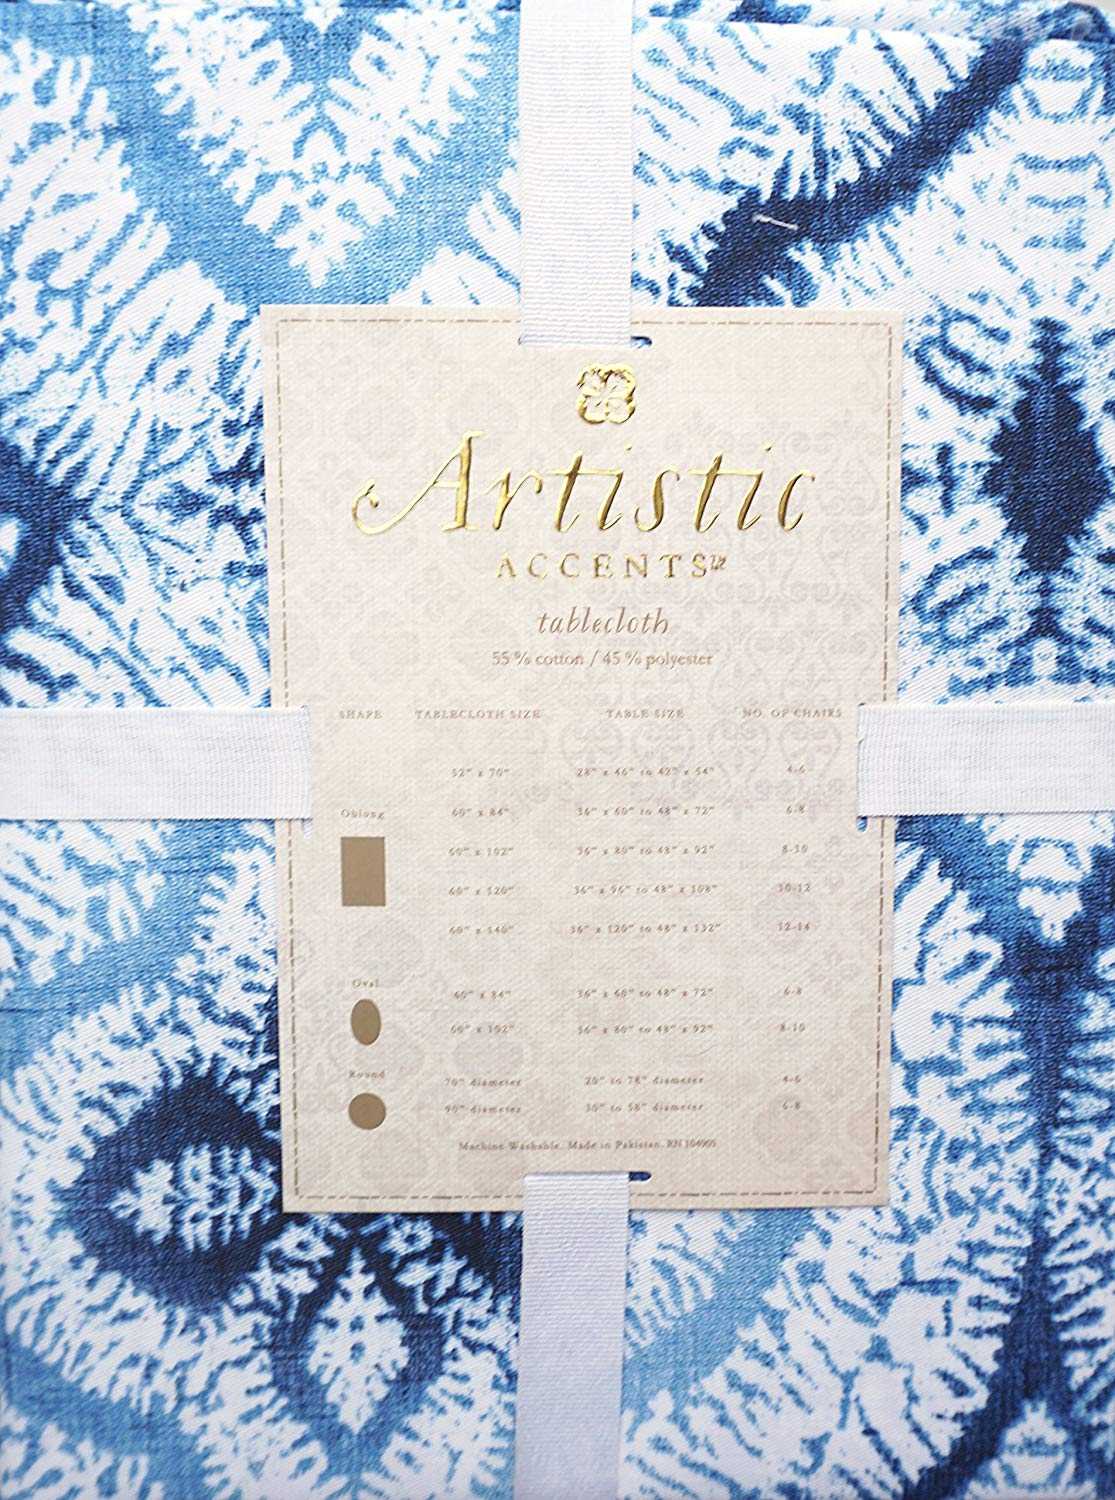 artistic accents fabric tablecloth boho bohemian geometric tapestry medallion pattern white inches home kitchen grill master parts target corner desk better homes and gardens